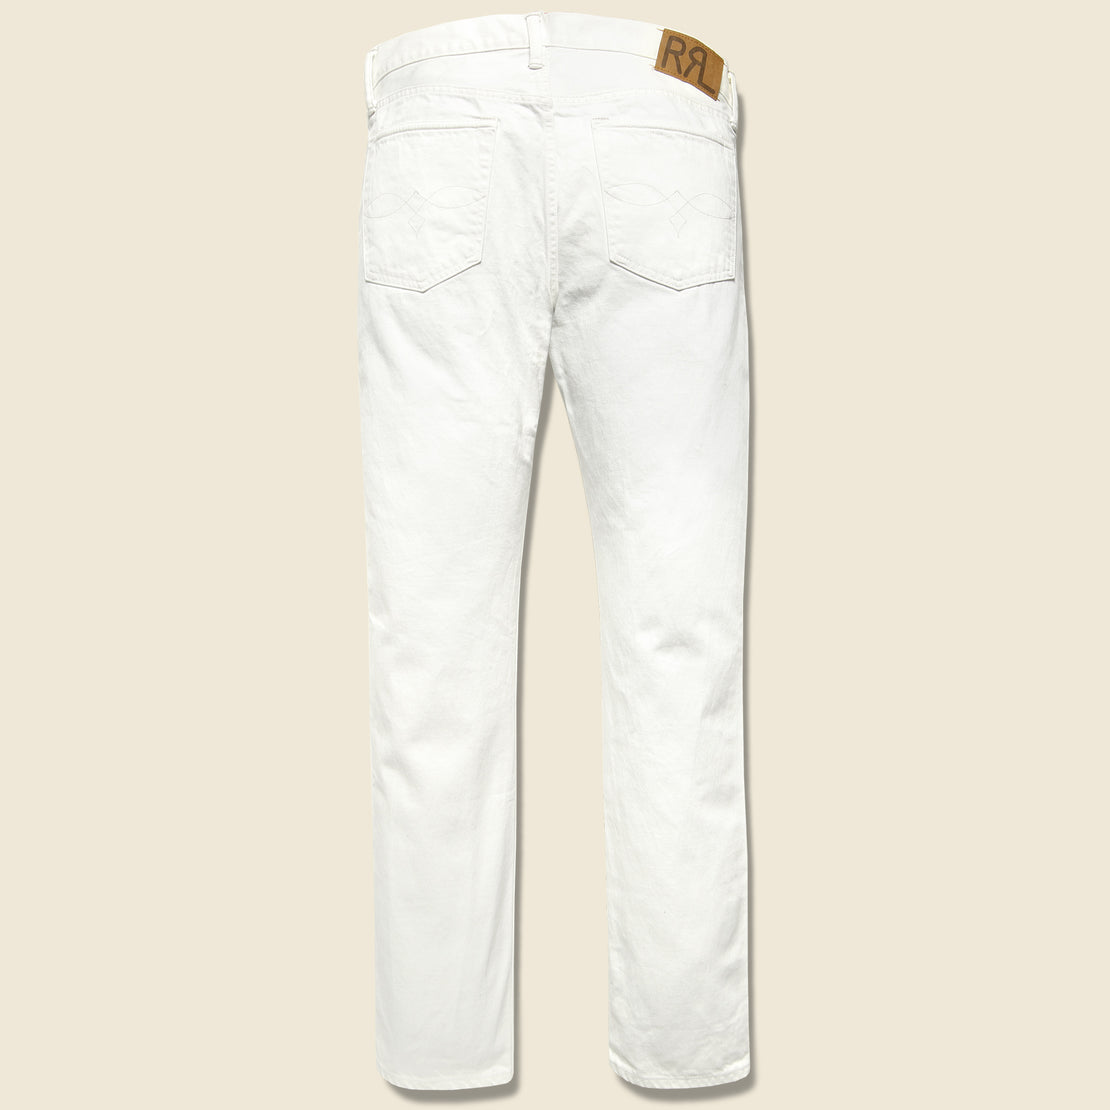 Slim Fit Jean - Whitestone Wash